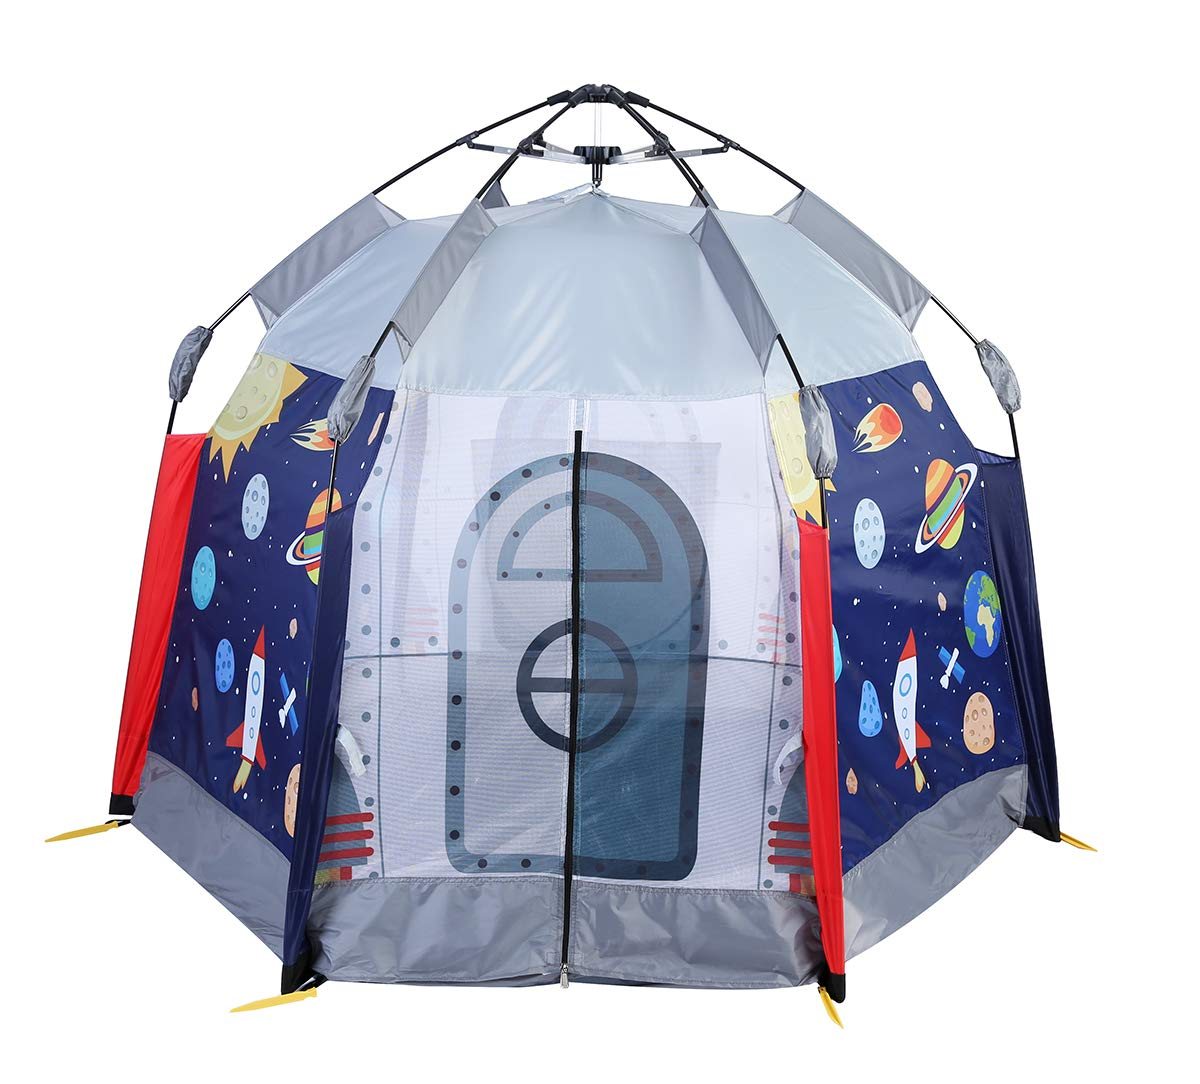 UTEX Automatic Instant 6 Kids Play Tent for Indoor/ Outdoor Fun,Kids Beach Tent Sun Shelter with Zippered Mesh Front, Camping Playhouse Indoor Playground, 66'' x 66'' x 44'' (Space Module) by UTEX (Image #1)